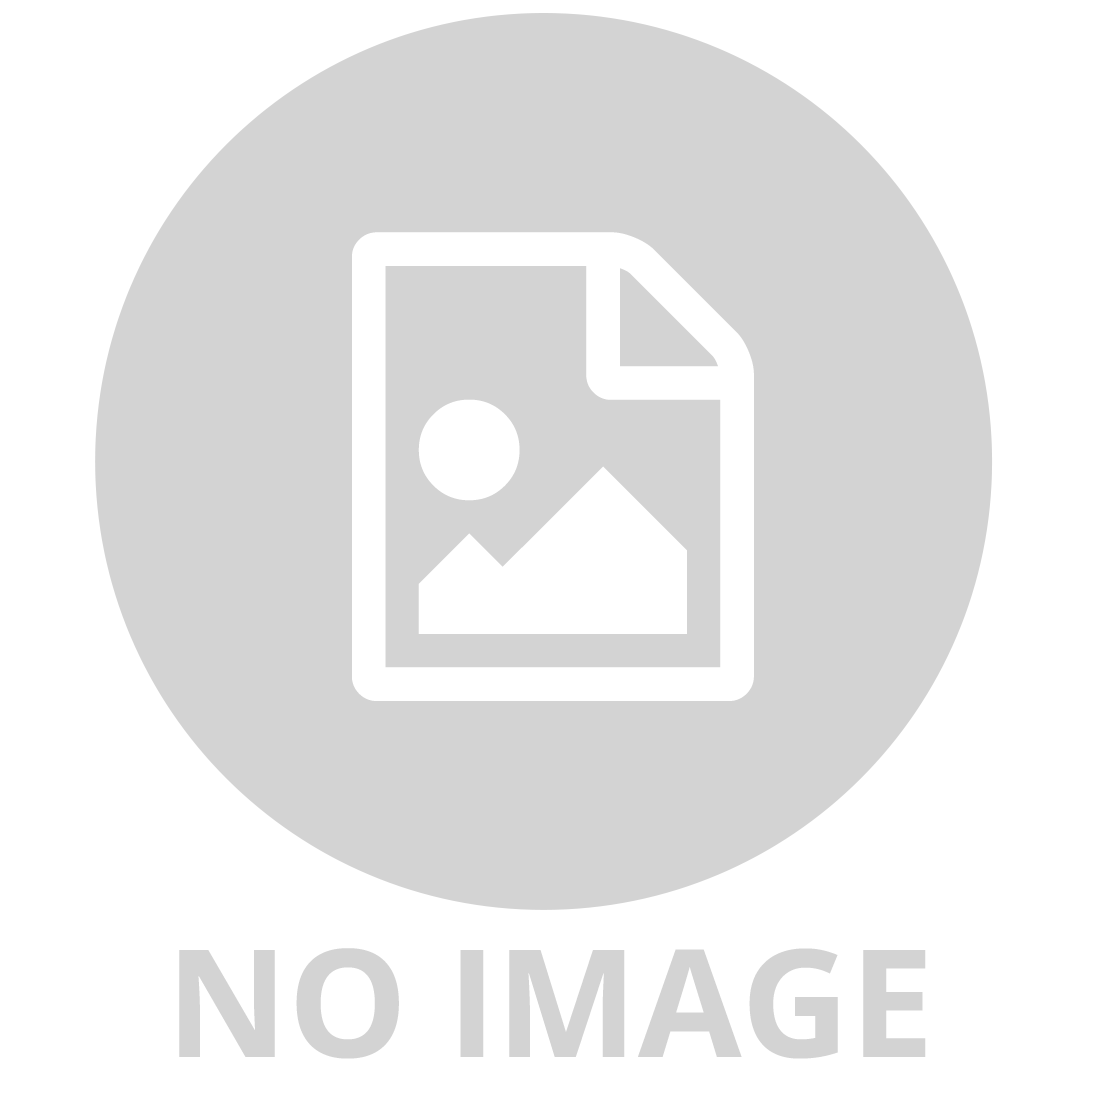 PLAYMOBIL CITY LIFE 9278 - MOBILE PET GROOMER